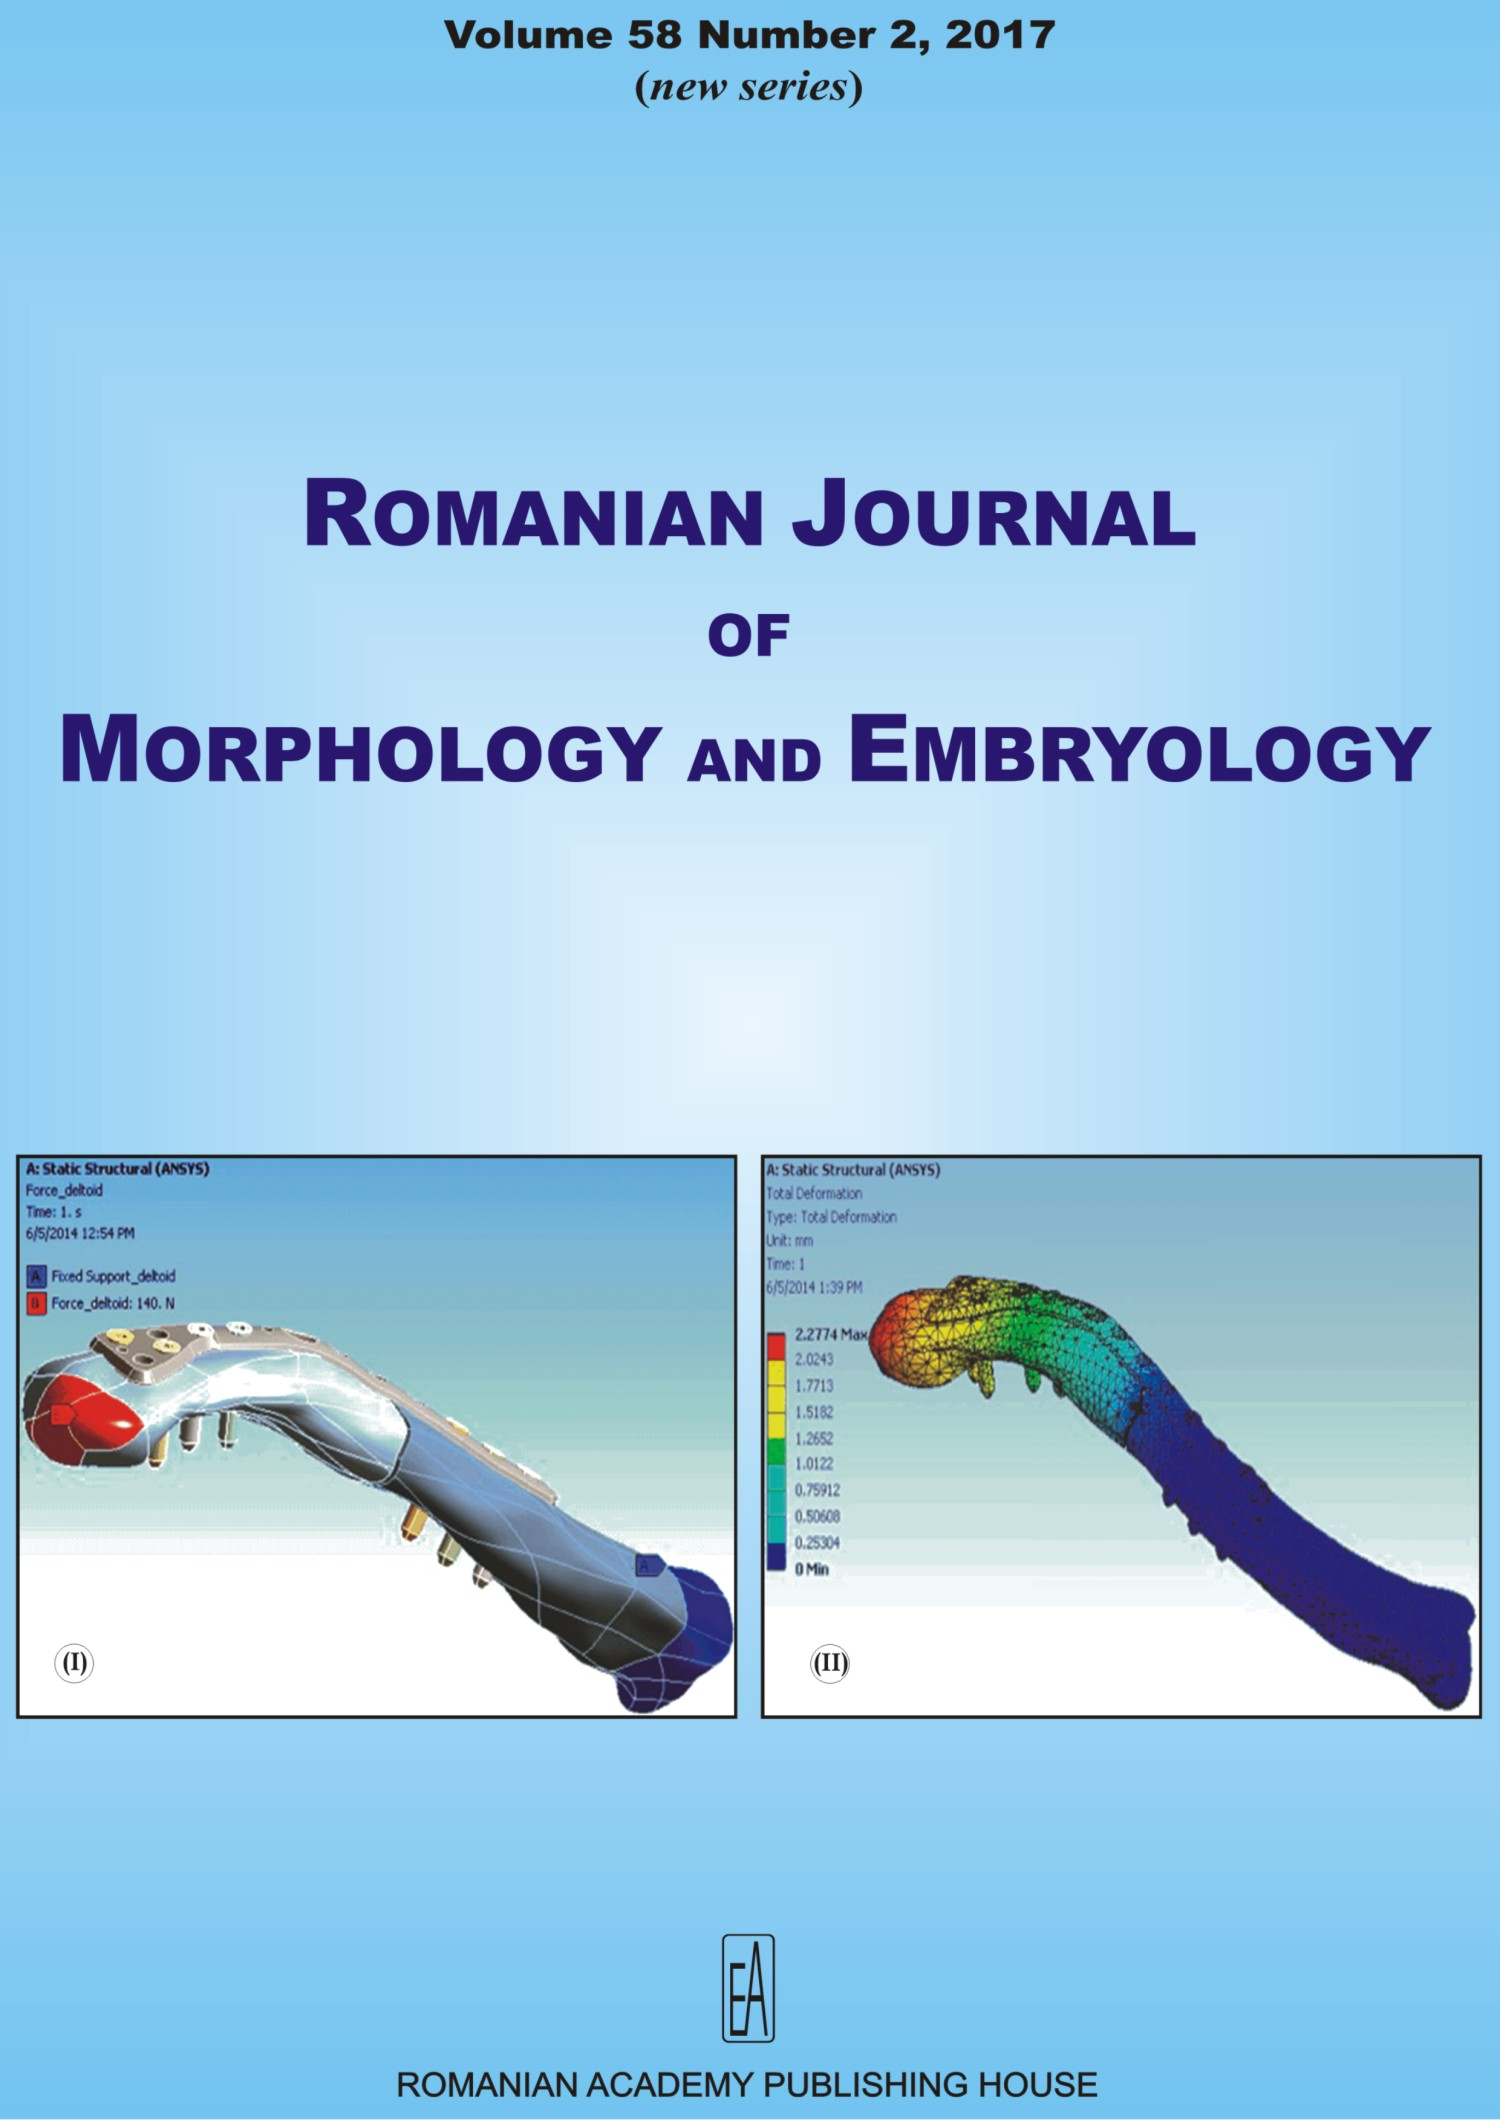 Romanian Journal of Morphology and Embryology, vol. 58 no. 2, 2017